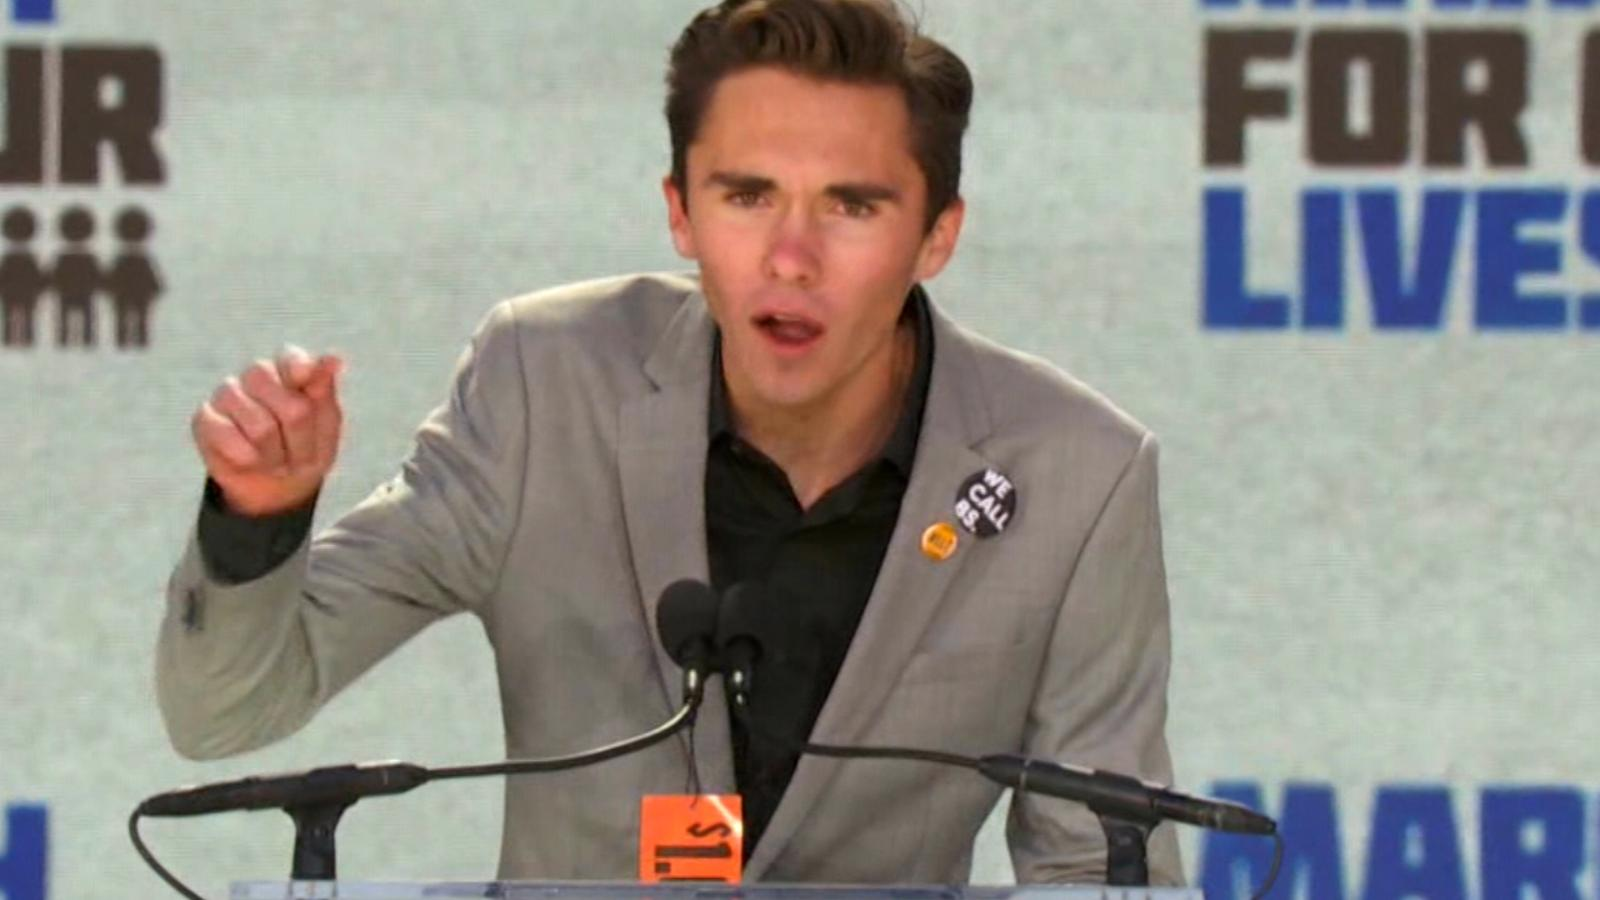 Schooling Lawmakers  CNNs Love Affair With David Hogg Reached A Fever Pitch With This Tweet